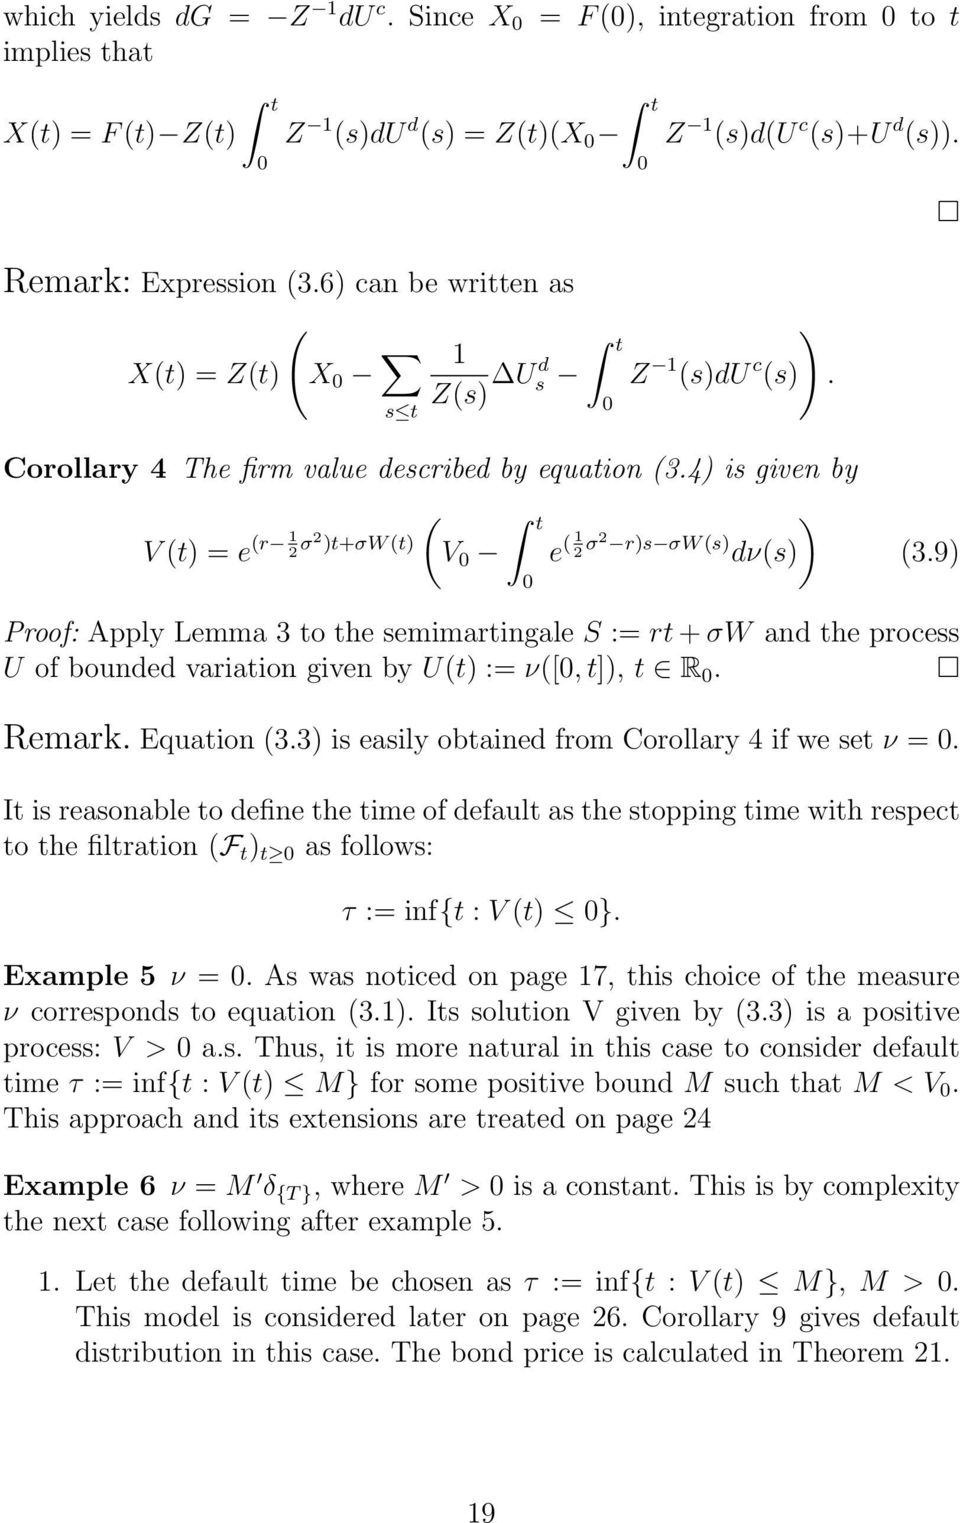 9 Proof: Apply Lemma 3 to the semimartingale S := rt + σw and the process U of bounded variation given by Ut := ν[,t], t R. Remark. Equation 3.3 is easily obtained from Corollary 4 if we set ν =.